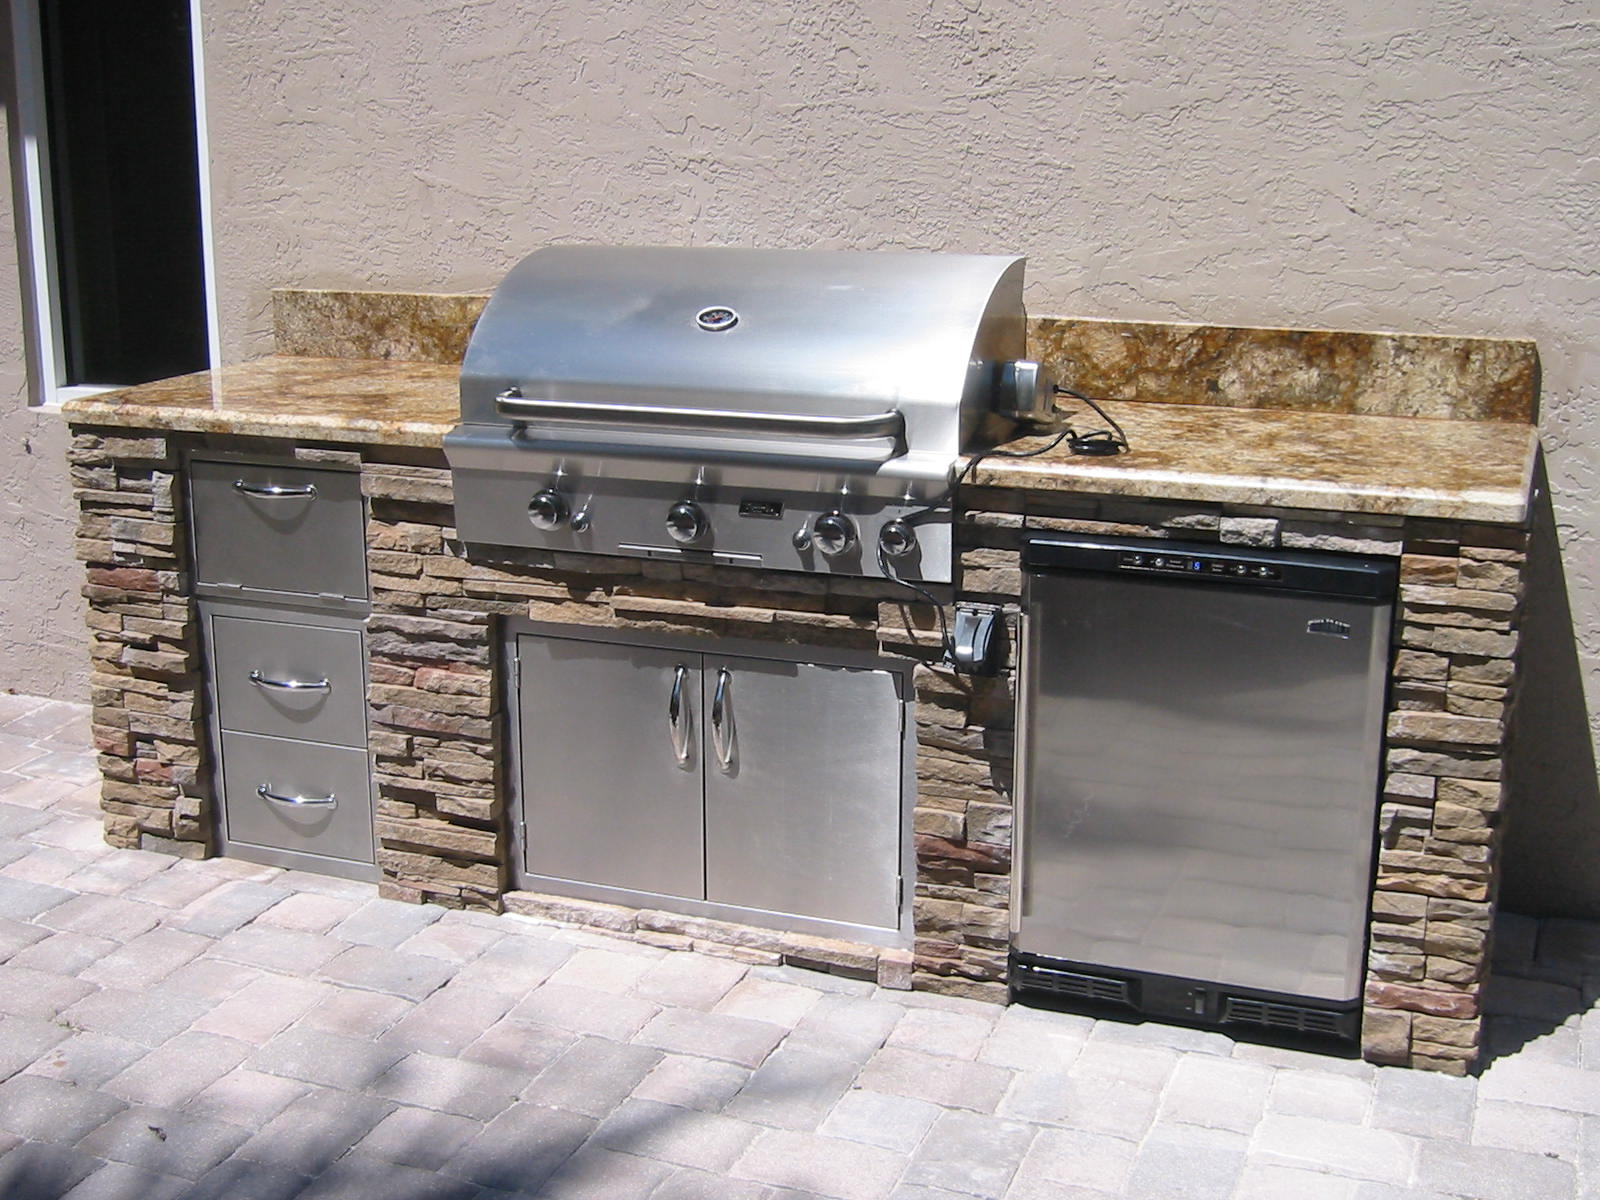 28+ [patio kitchen gas grill] - cal 7 ft grill island with 4